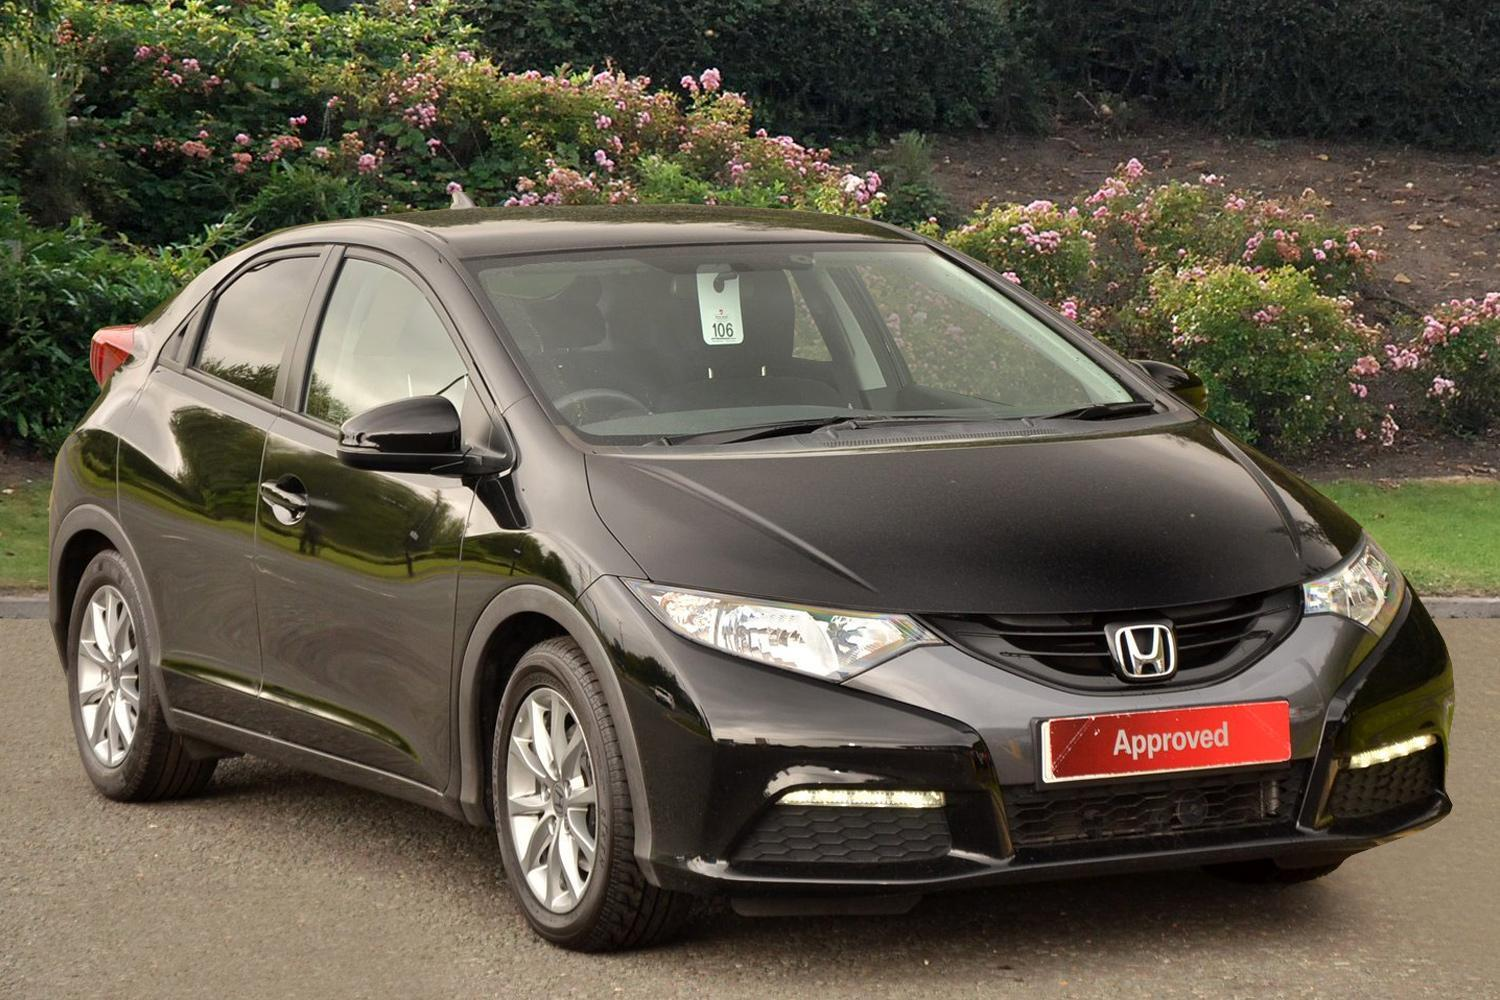 used honda civic 1 8 i vtec se 5dr auto petrol hatchback for sale vertu honda. Black Bedroom Furniture Sets. Home Design Ideas